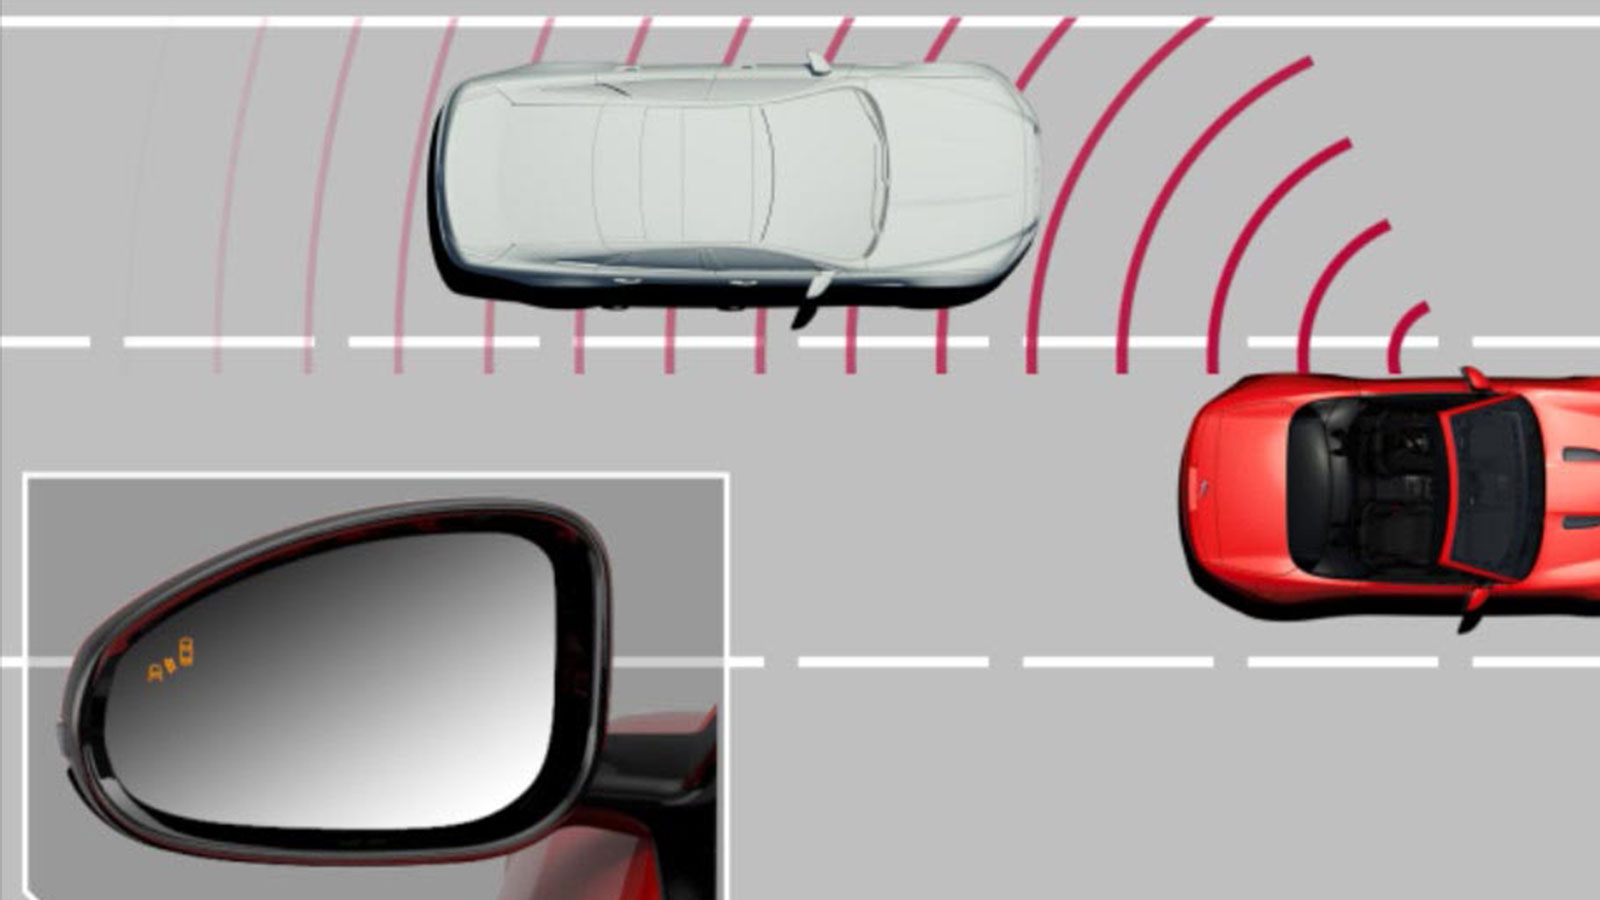 Diagram of Jaguar F-Type Blind Spot Monitoring Detetcting Other Vehicles